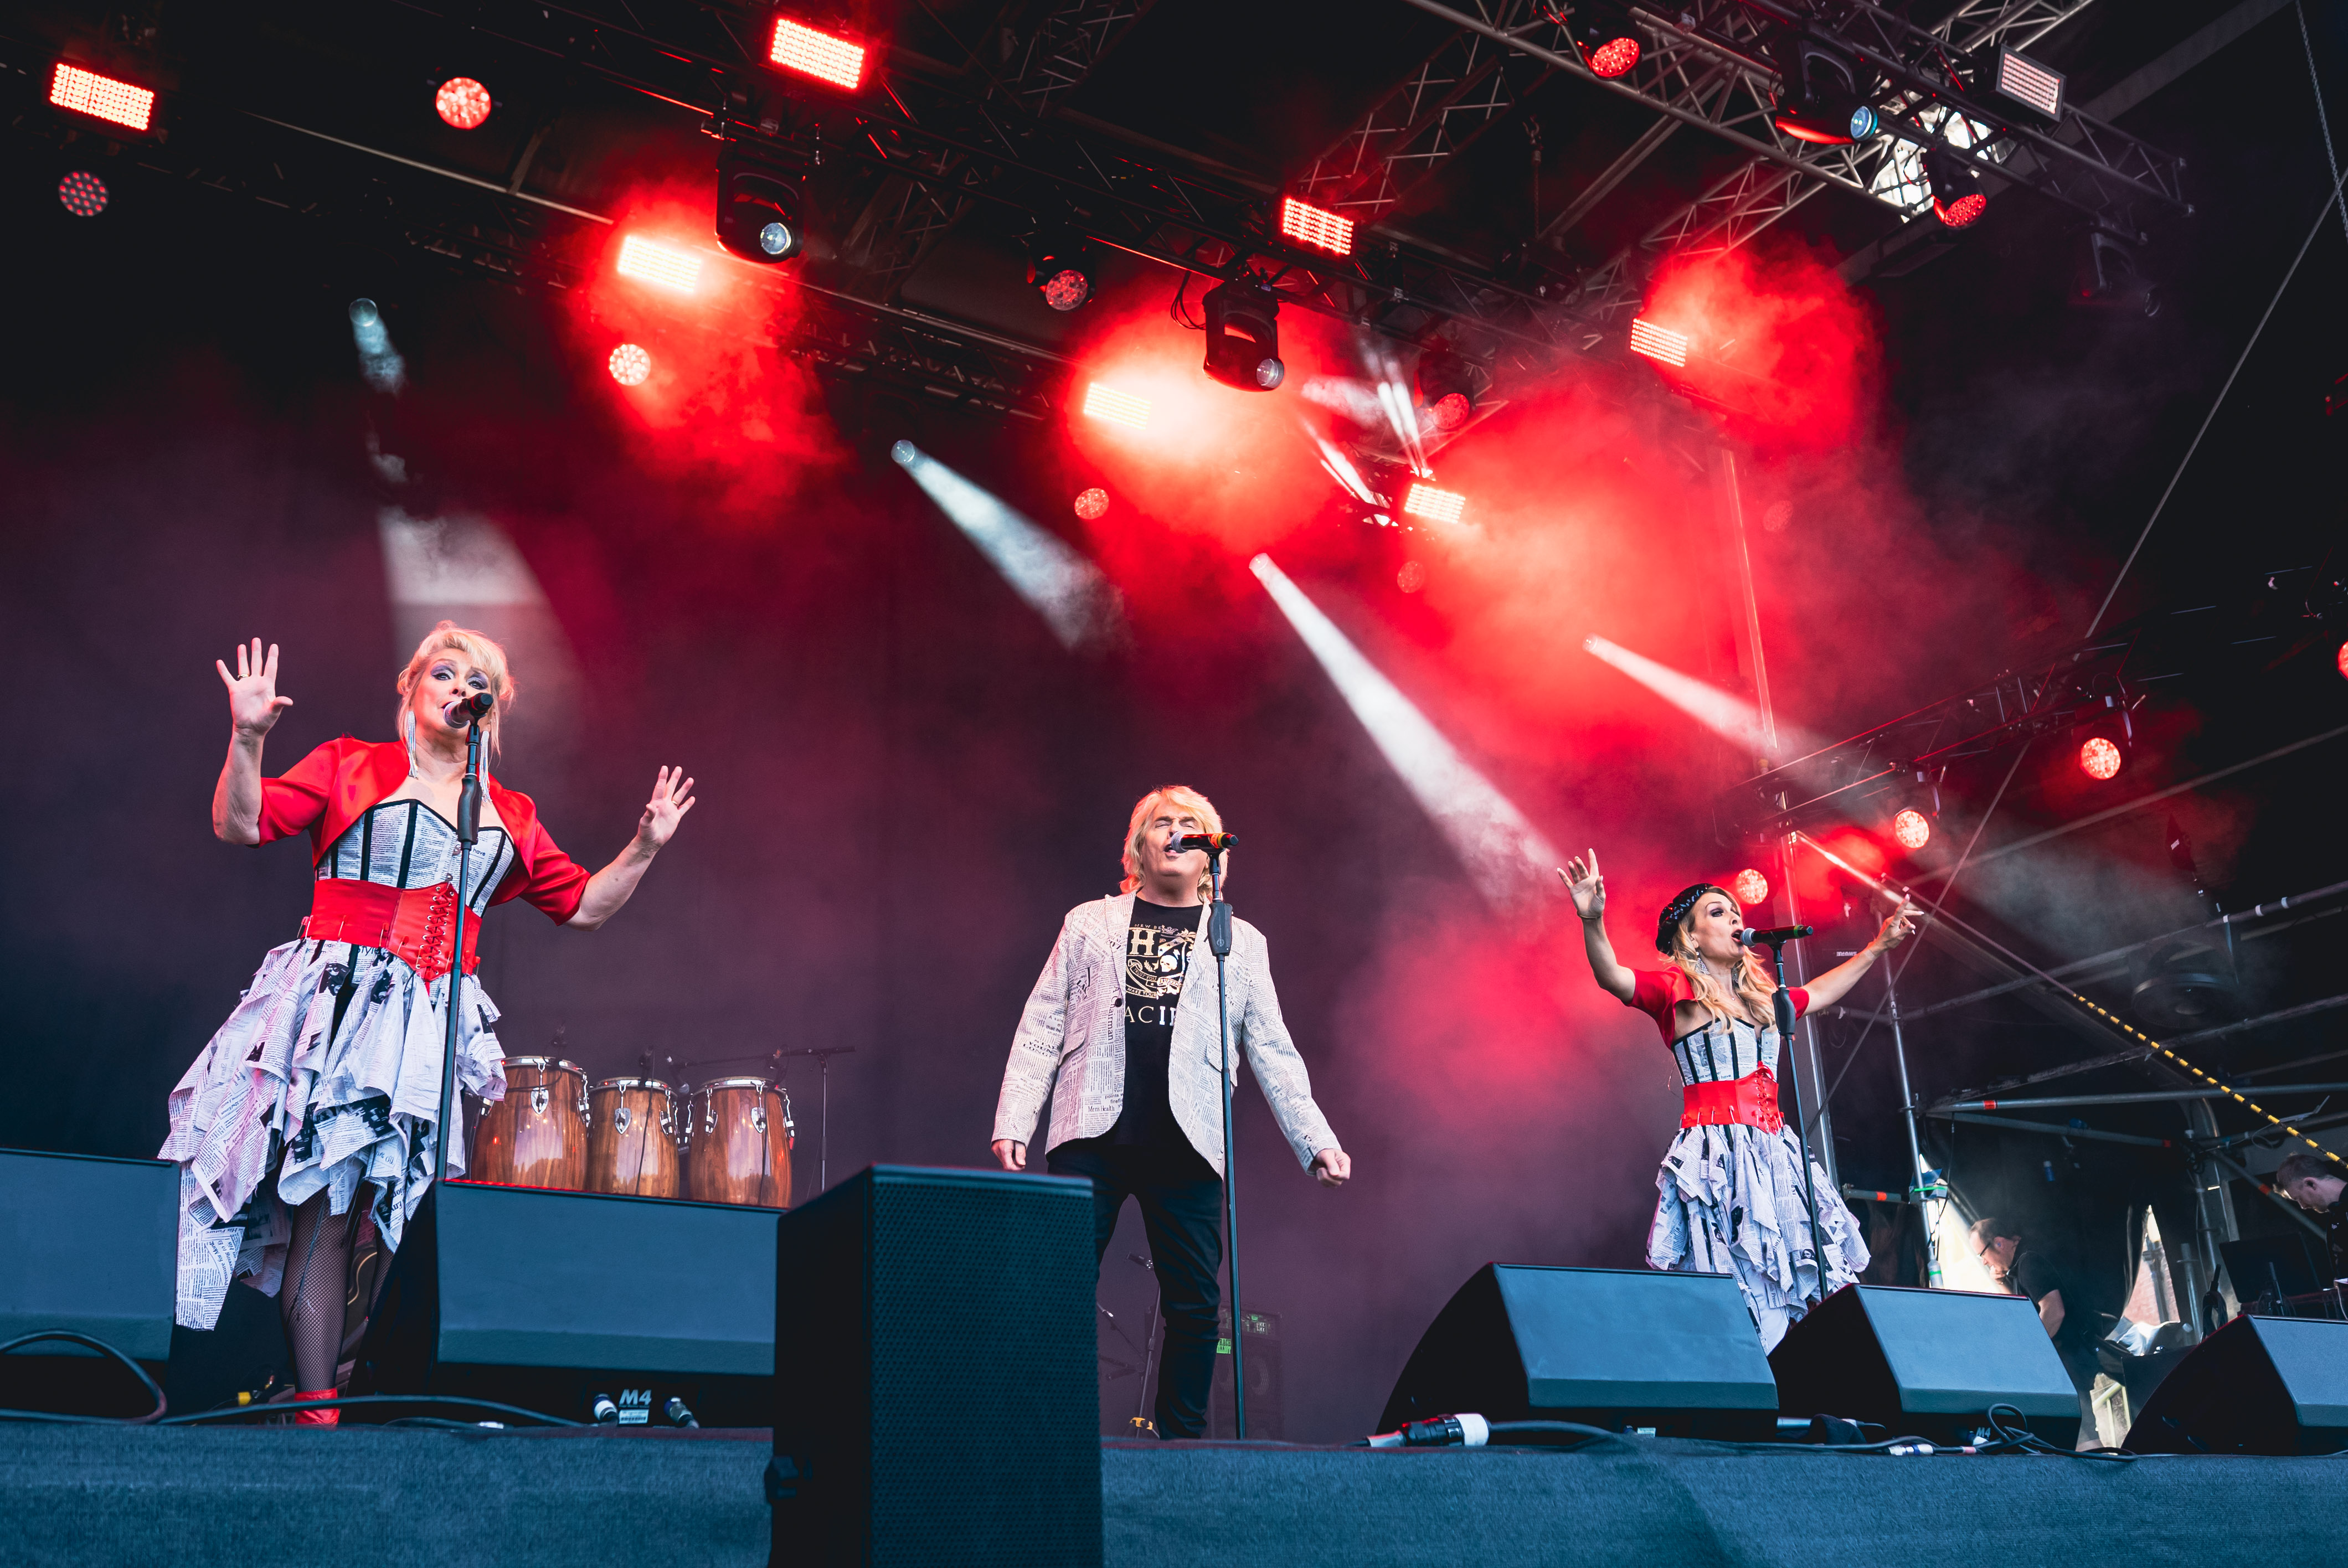 Take a trip back to the 80's at Wonderhall Festival